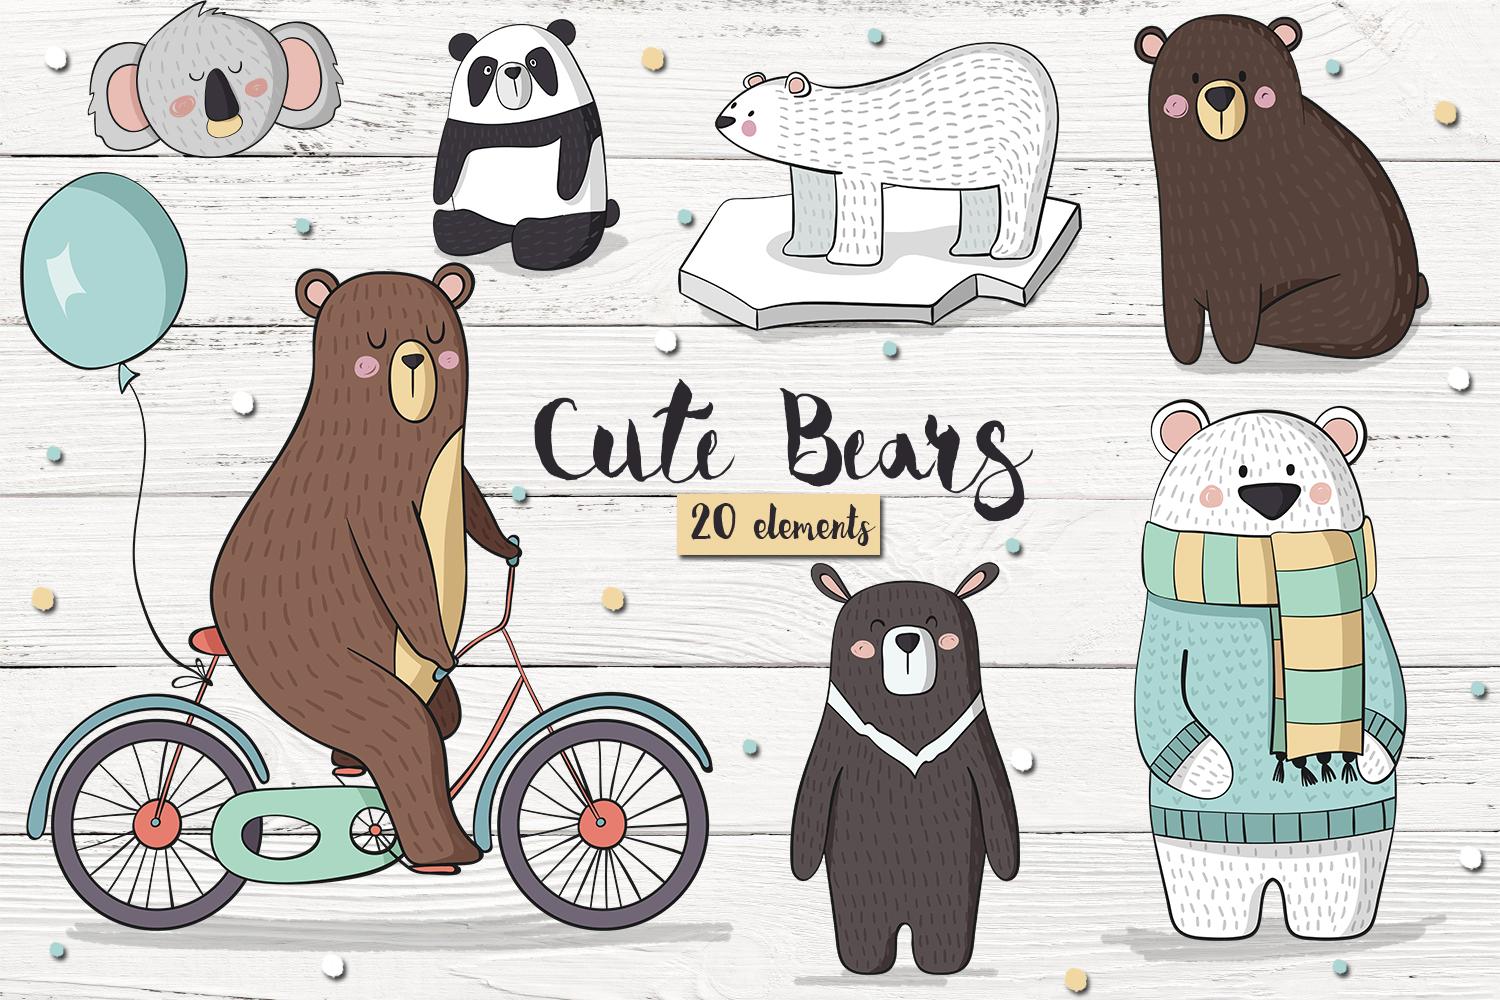 Cute Bears example image 1